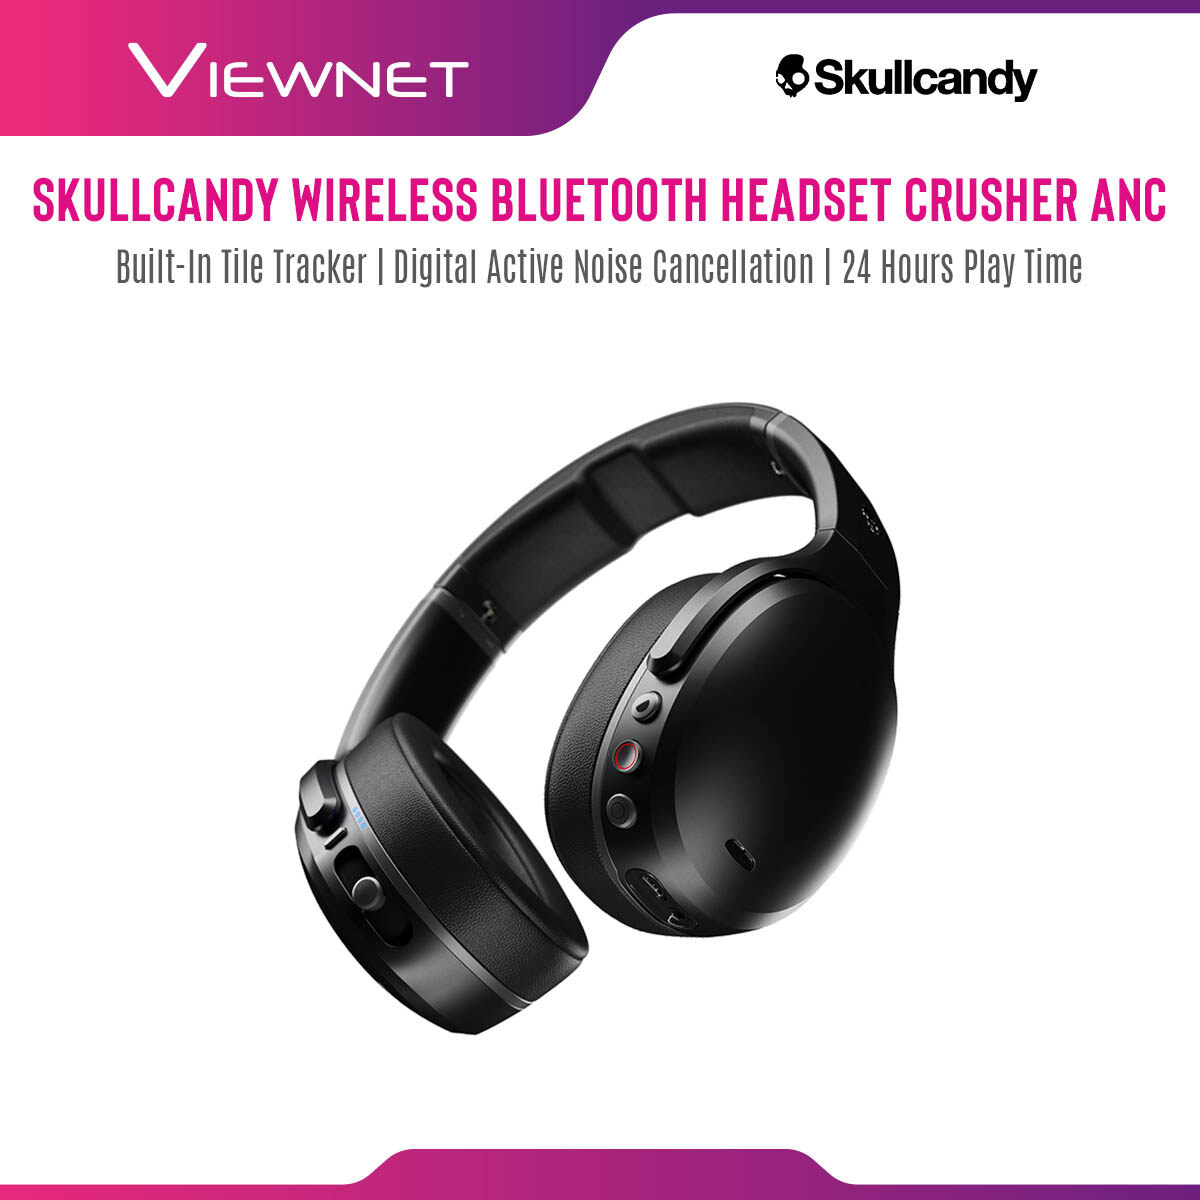 Skullcandy Crusher ANC Wireless Bluetooth Headset with Built-In Tile® Tracker, Digital Active Noise Cancellation, 24 Hours Play Time, Adjustable Sensory Bass, Personal Sound, Bluetooth Wireless Technology